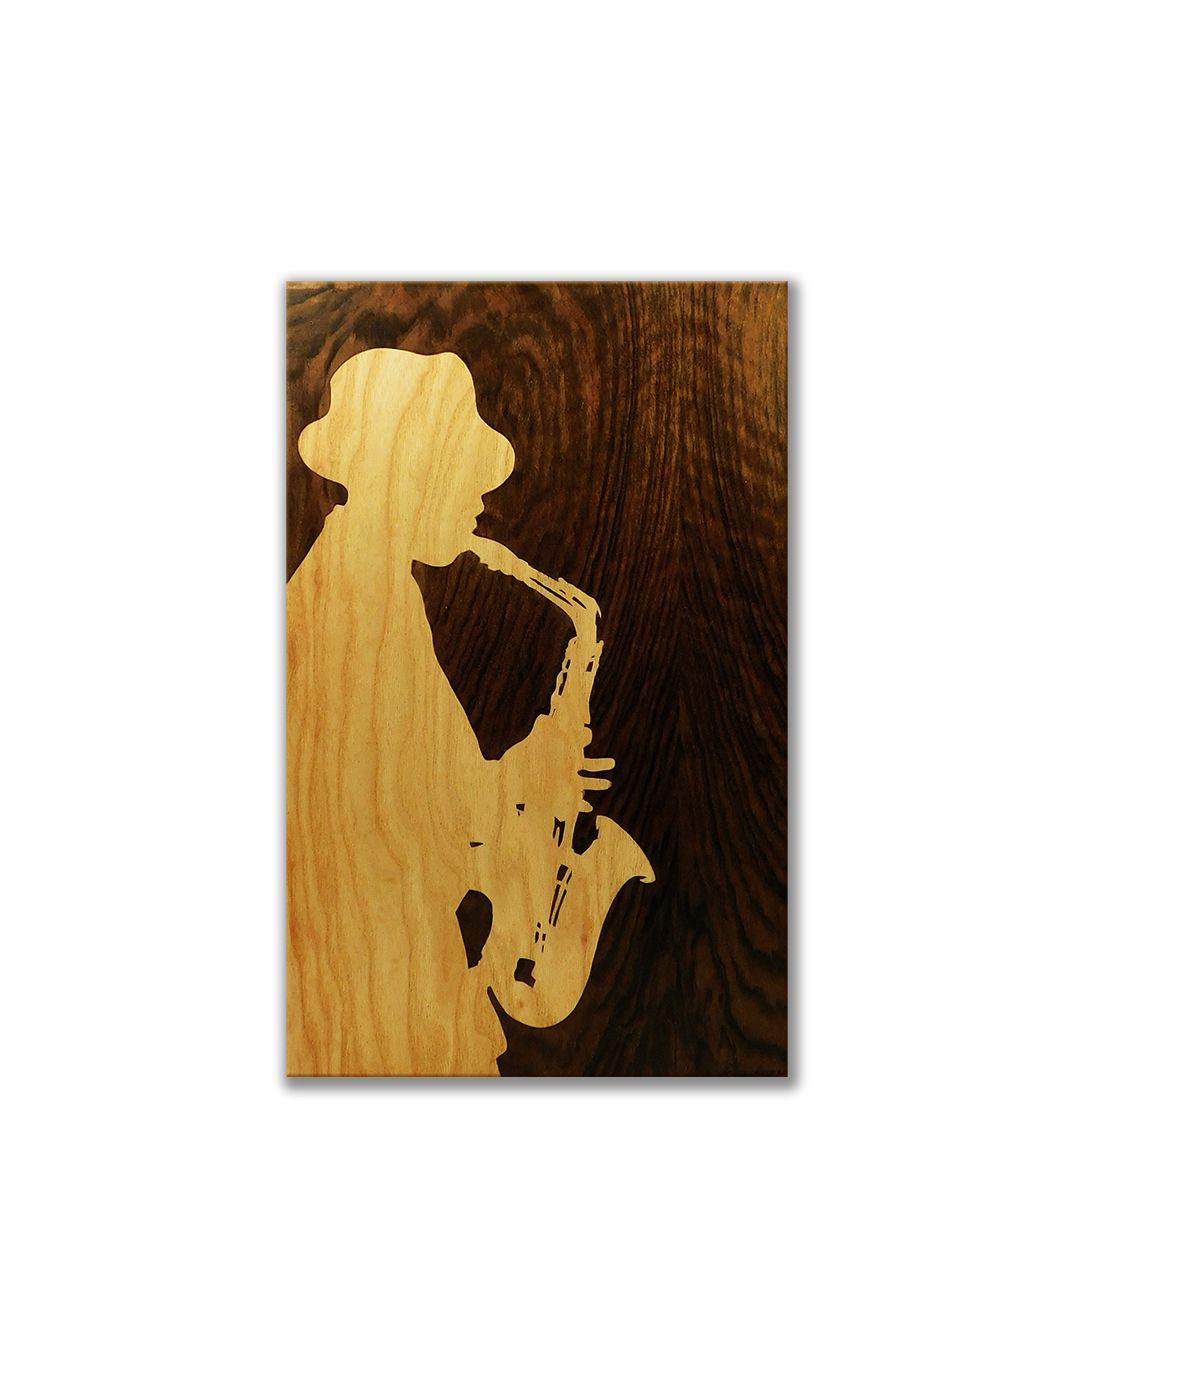 mood wood coffee light music nice jazz saxophone chill